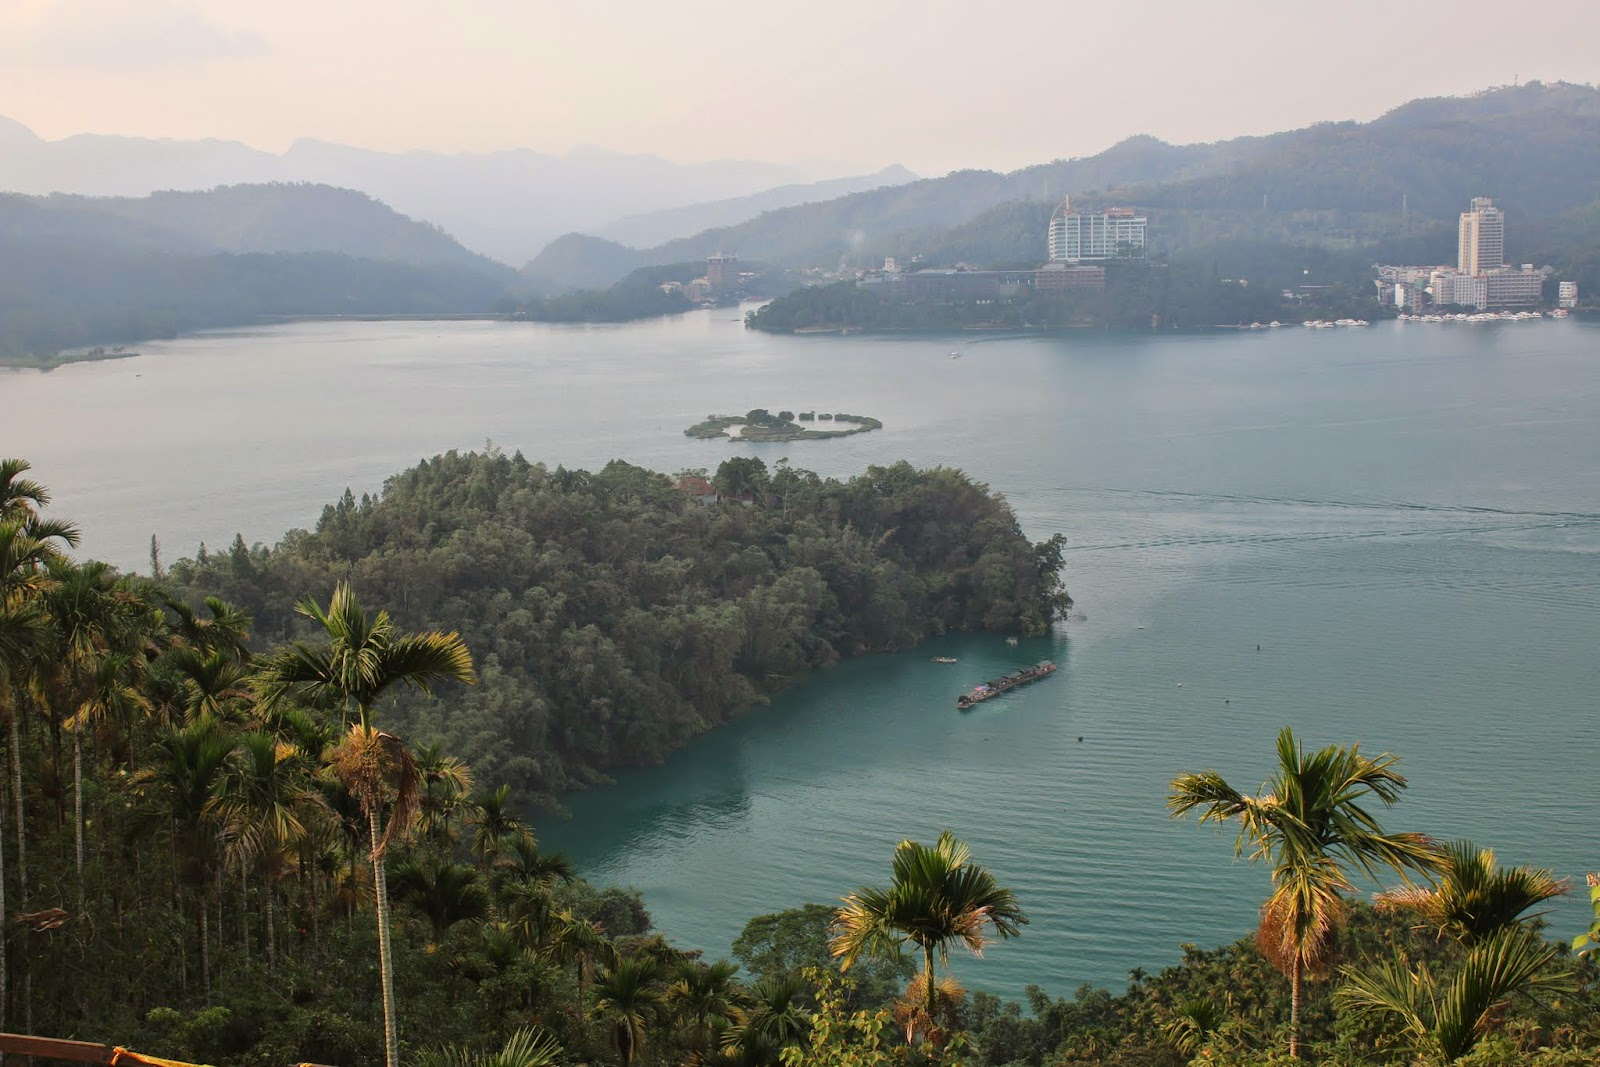 It's clear beautiful scenic lake view of Sun Moon Lake and Lalu Island from Xuanzang Temple in Nantou County of Taiwan